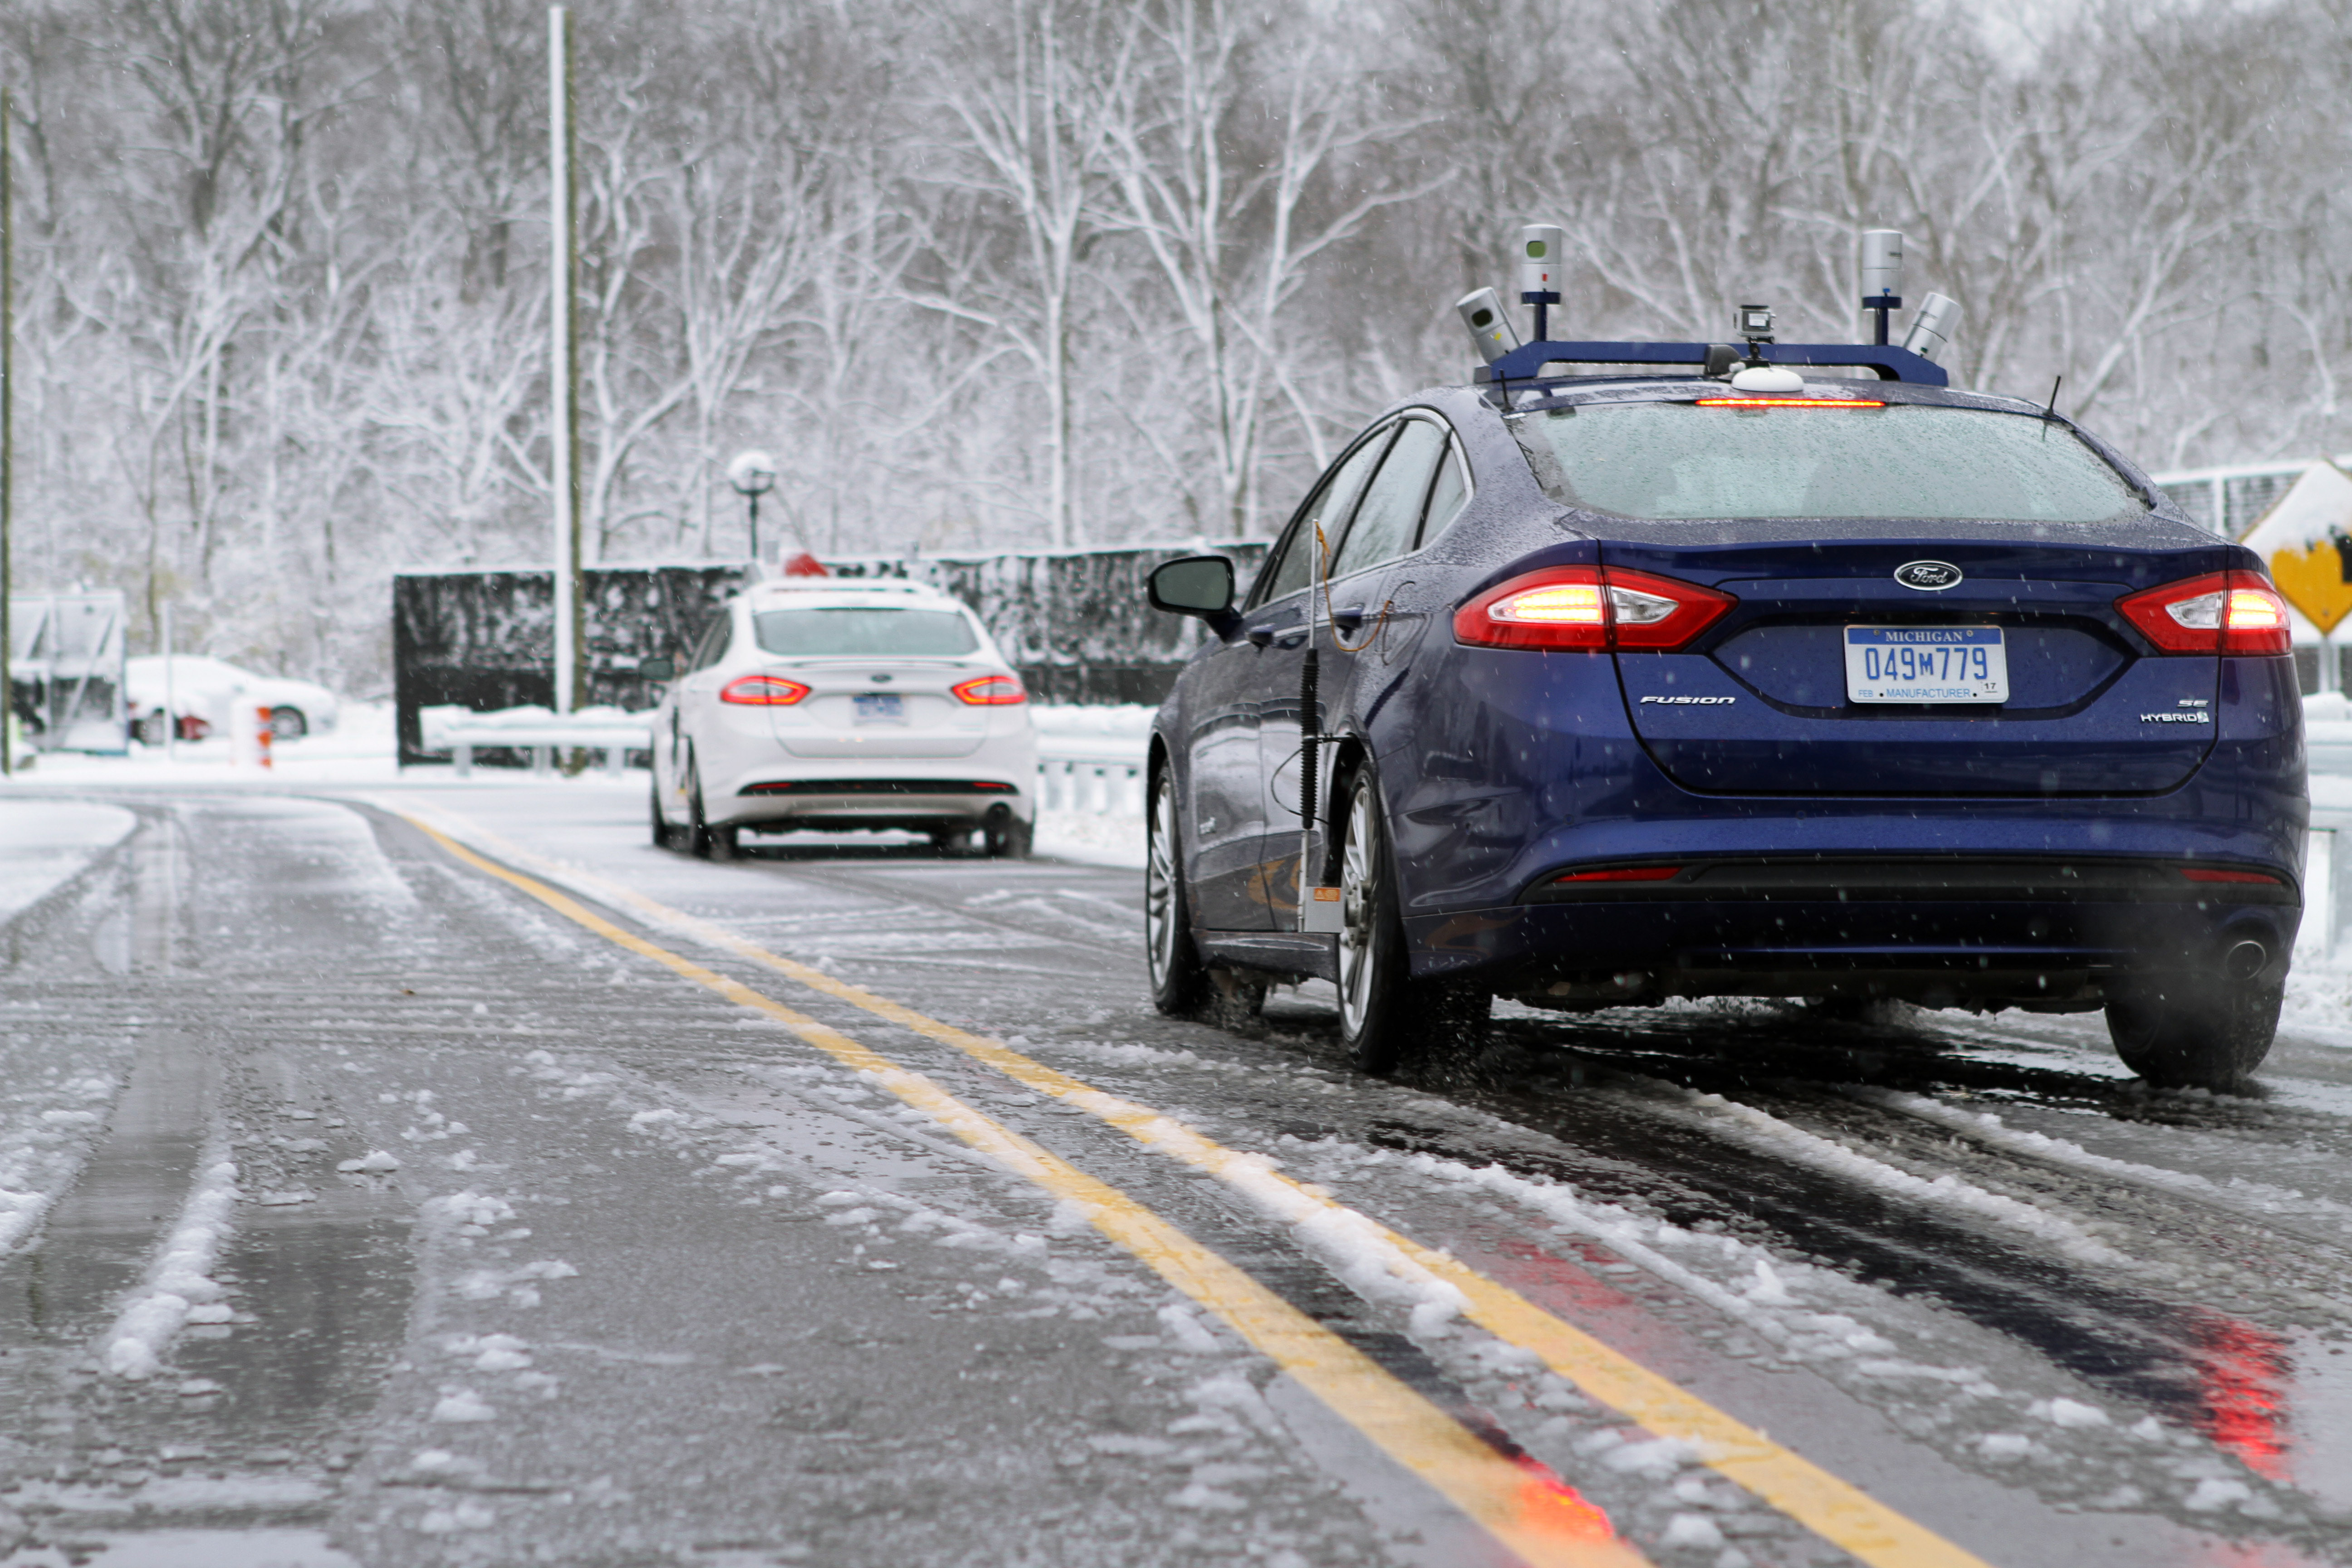 Ford Testing Self-Driving Cars in Snow